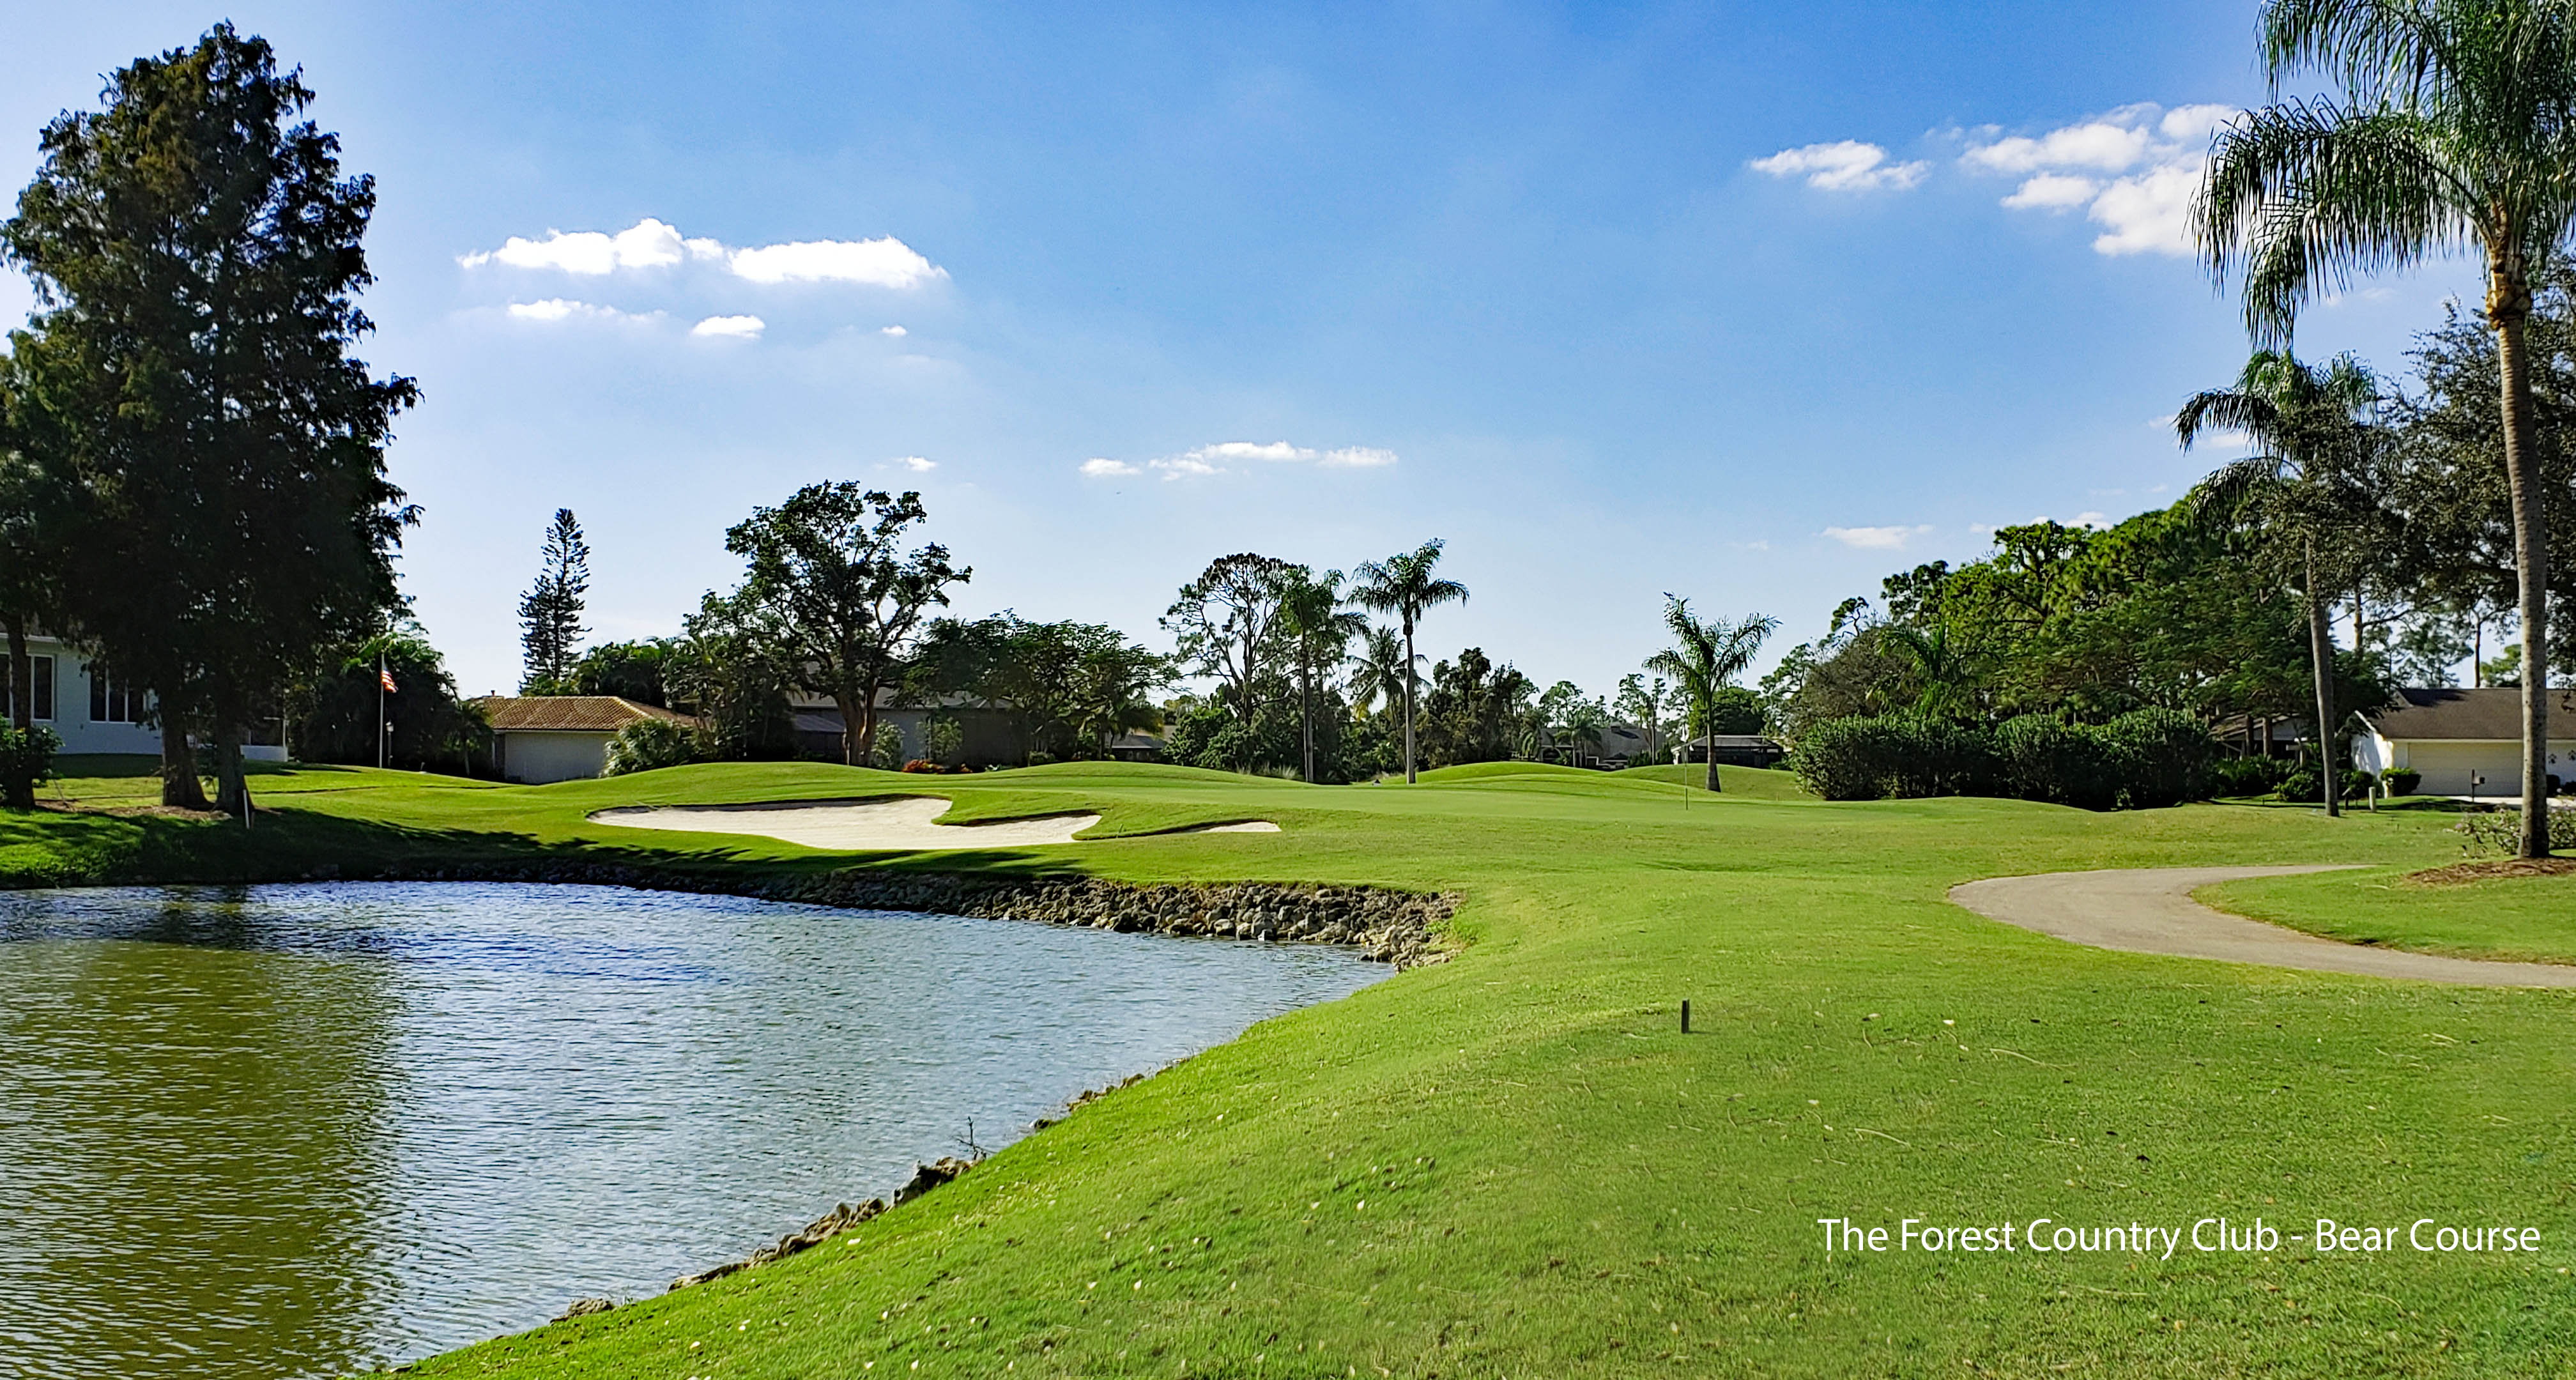 The Forest Country Club in Fort Myers Florida